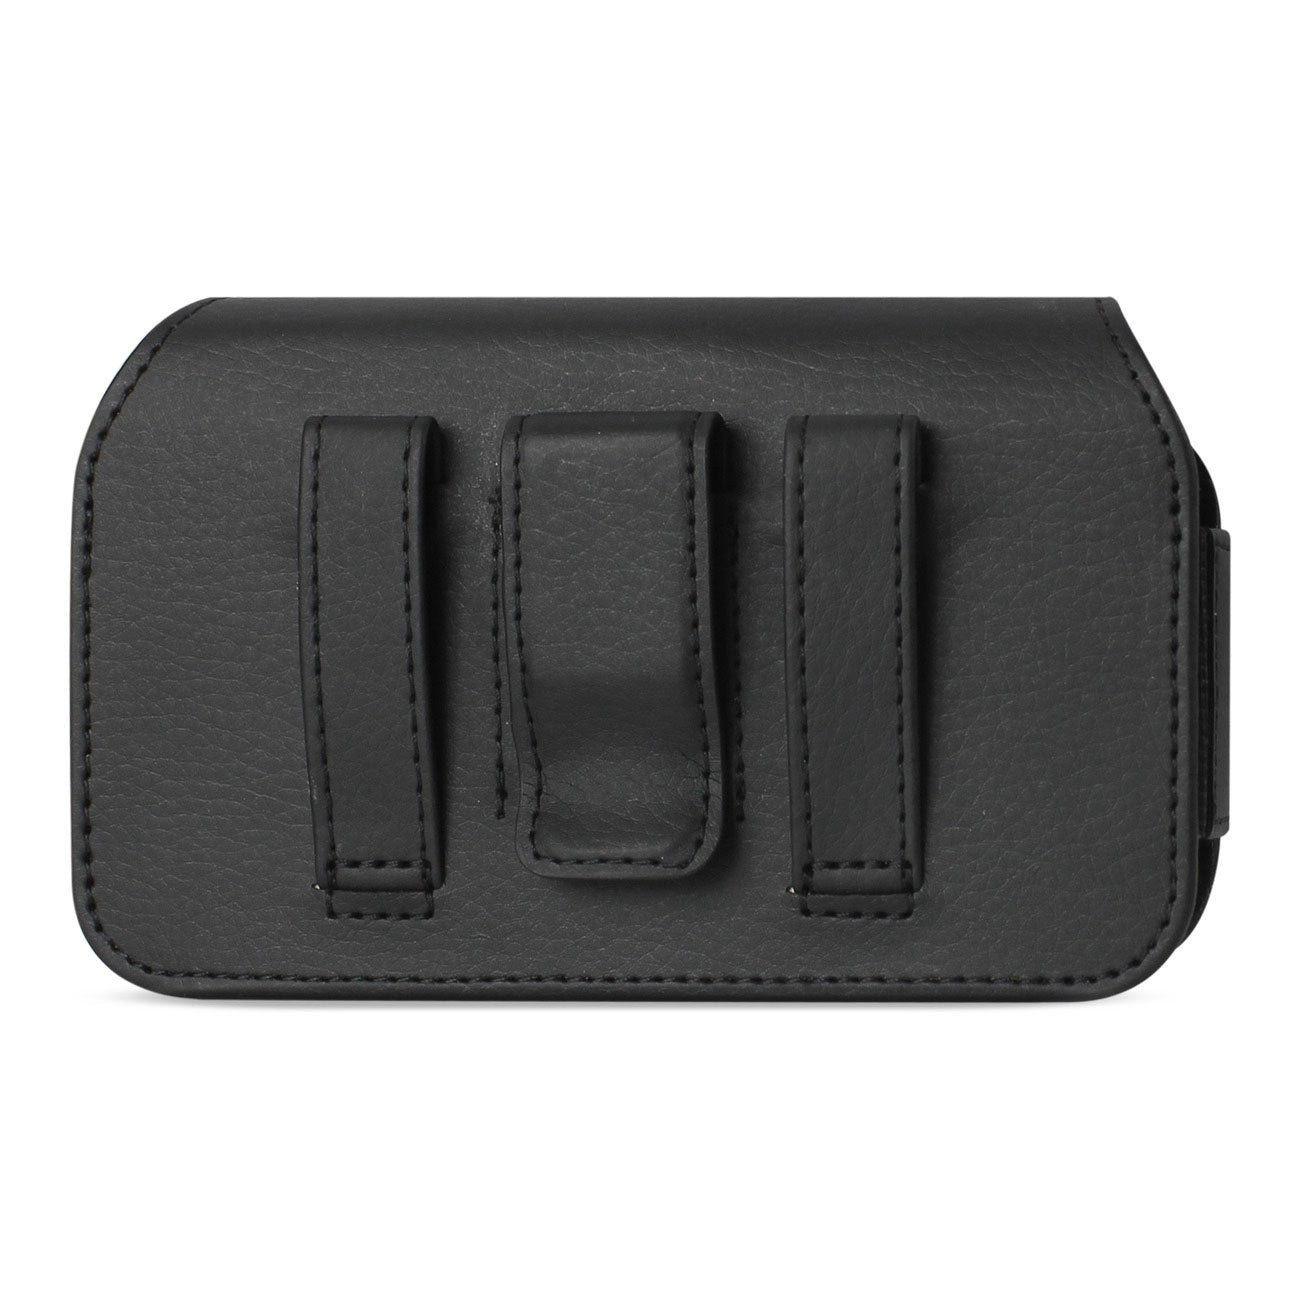 Reiko Horizontal Leather Belt Pouch With Metal Reiko Logo In Black (7.0x3.9x0.7 Inches)